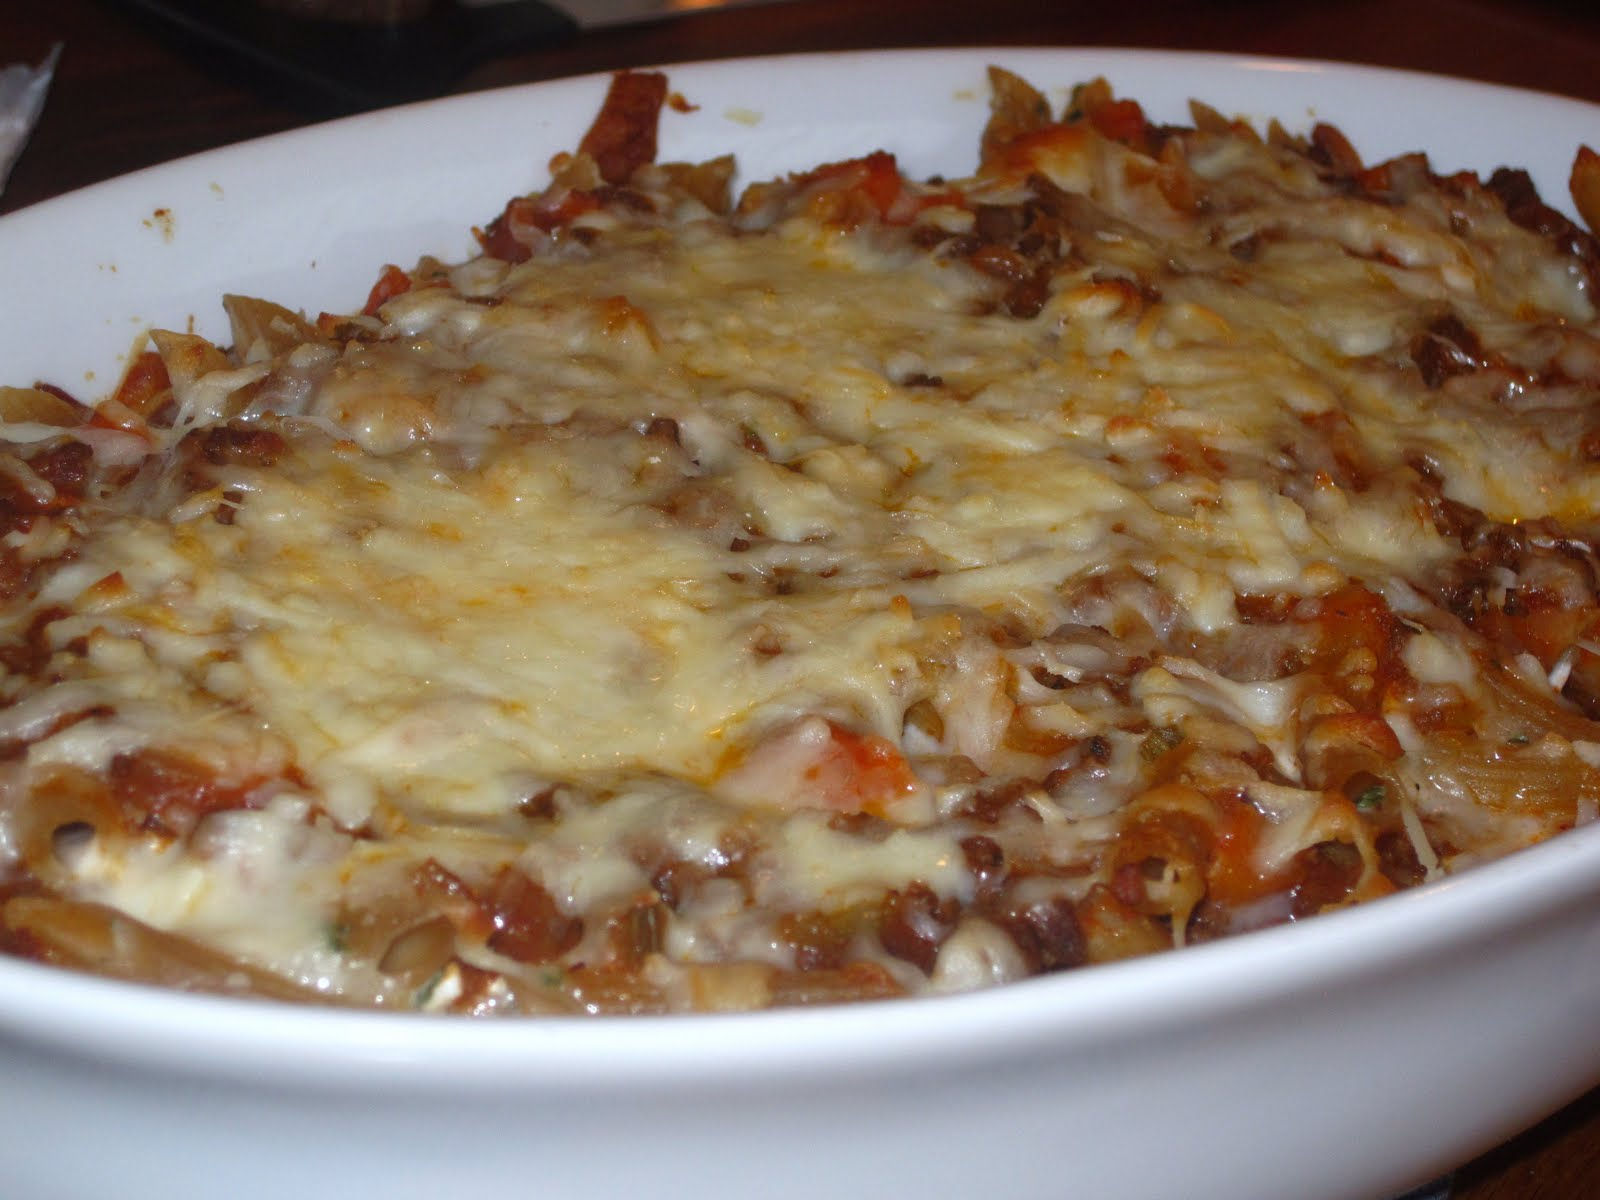 baked ziti with meat,baked ziti vegetables,baked ziti ricotta mozzarella,baked ziti ricotta meat,baked ziti with sausage,baked ziti recipe,baked ziti beef,baked ziti with meat sauce,